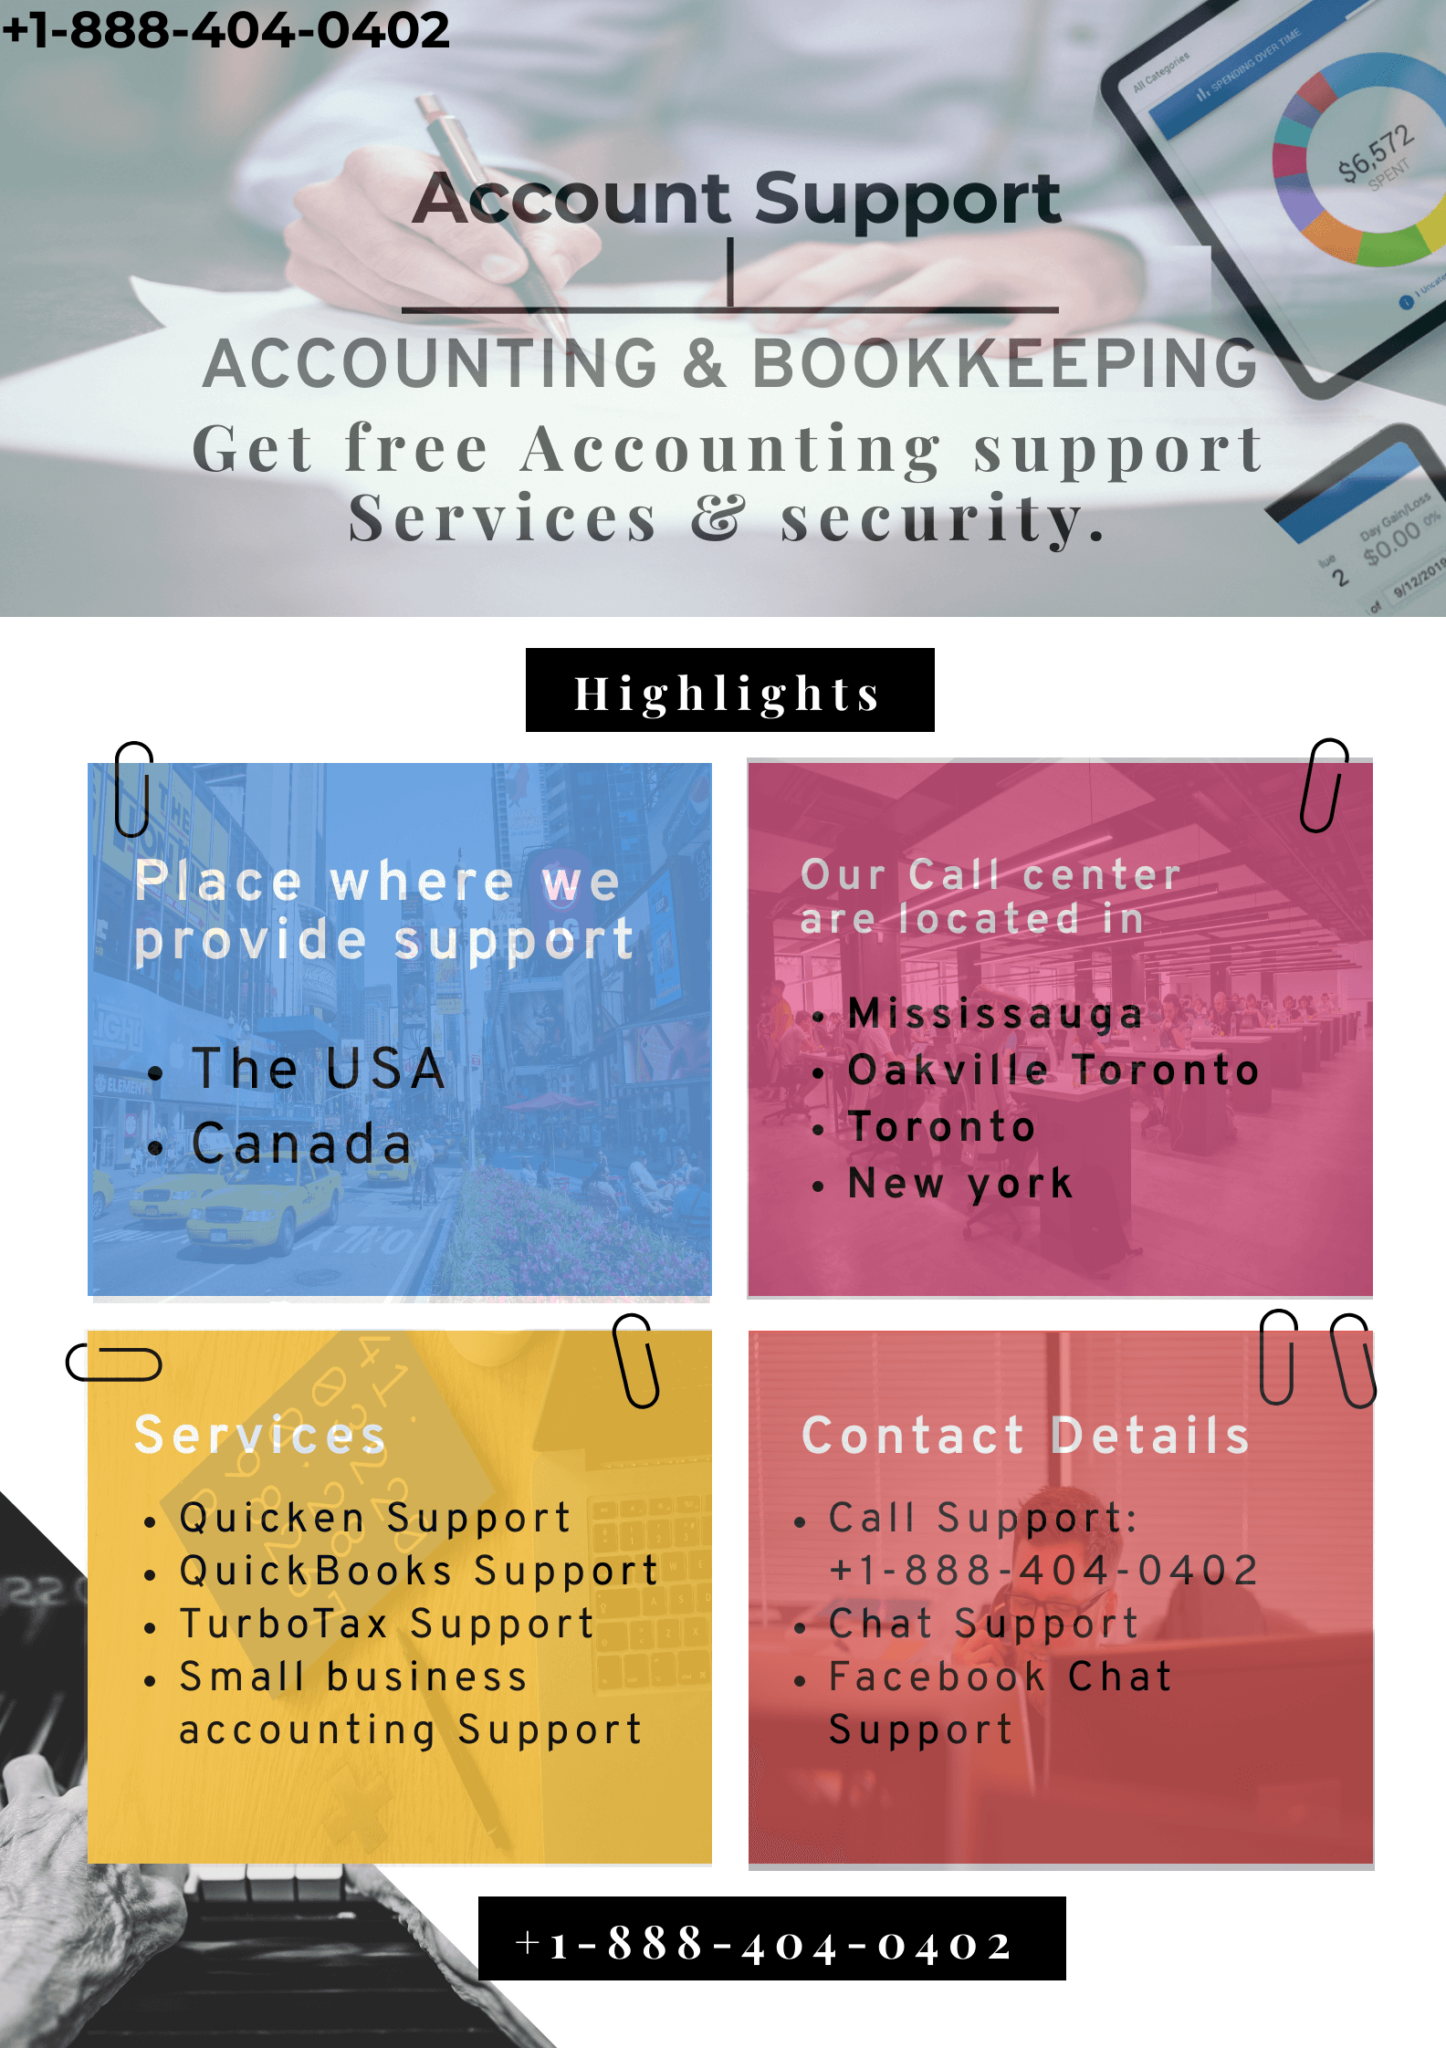 Get free Accounting support Services & security. in 2020